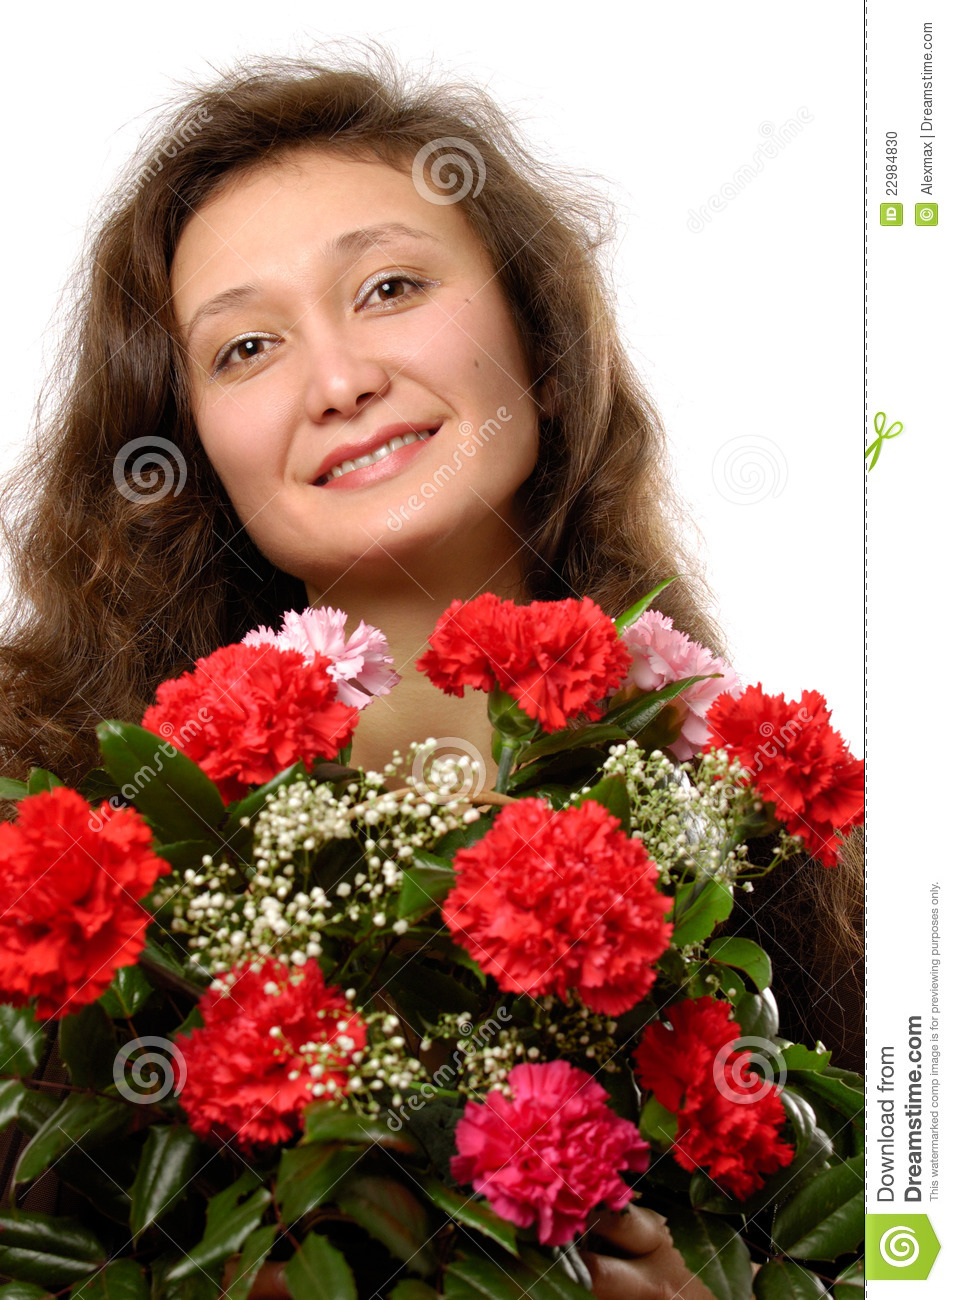 Woman with Bunch of Red Carnations